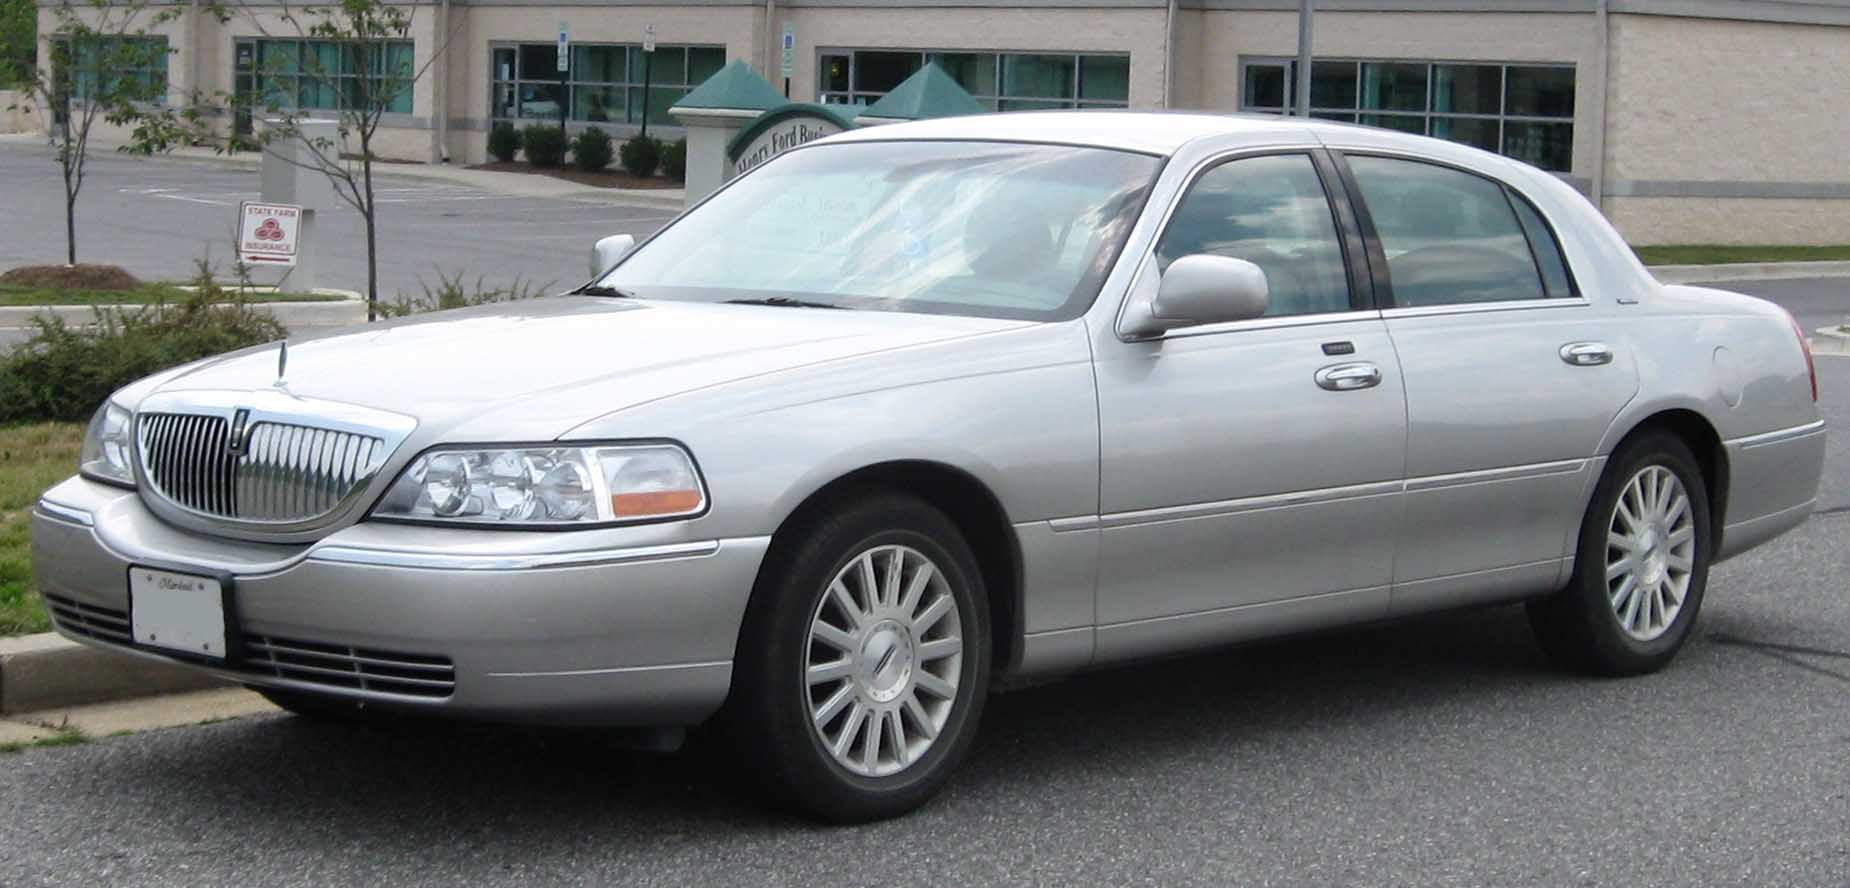 Lincoln Town Car Wikipedia